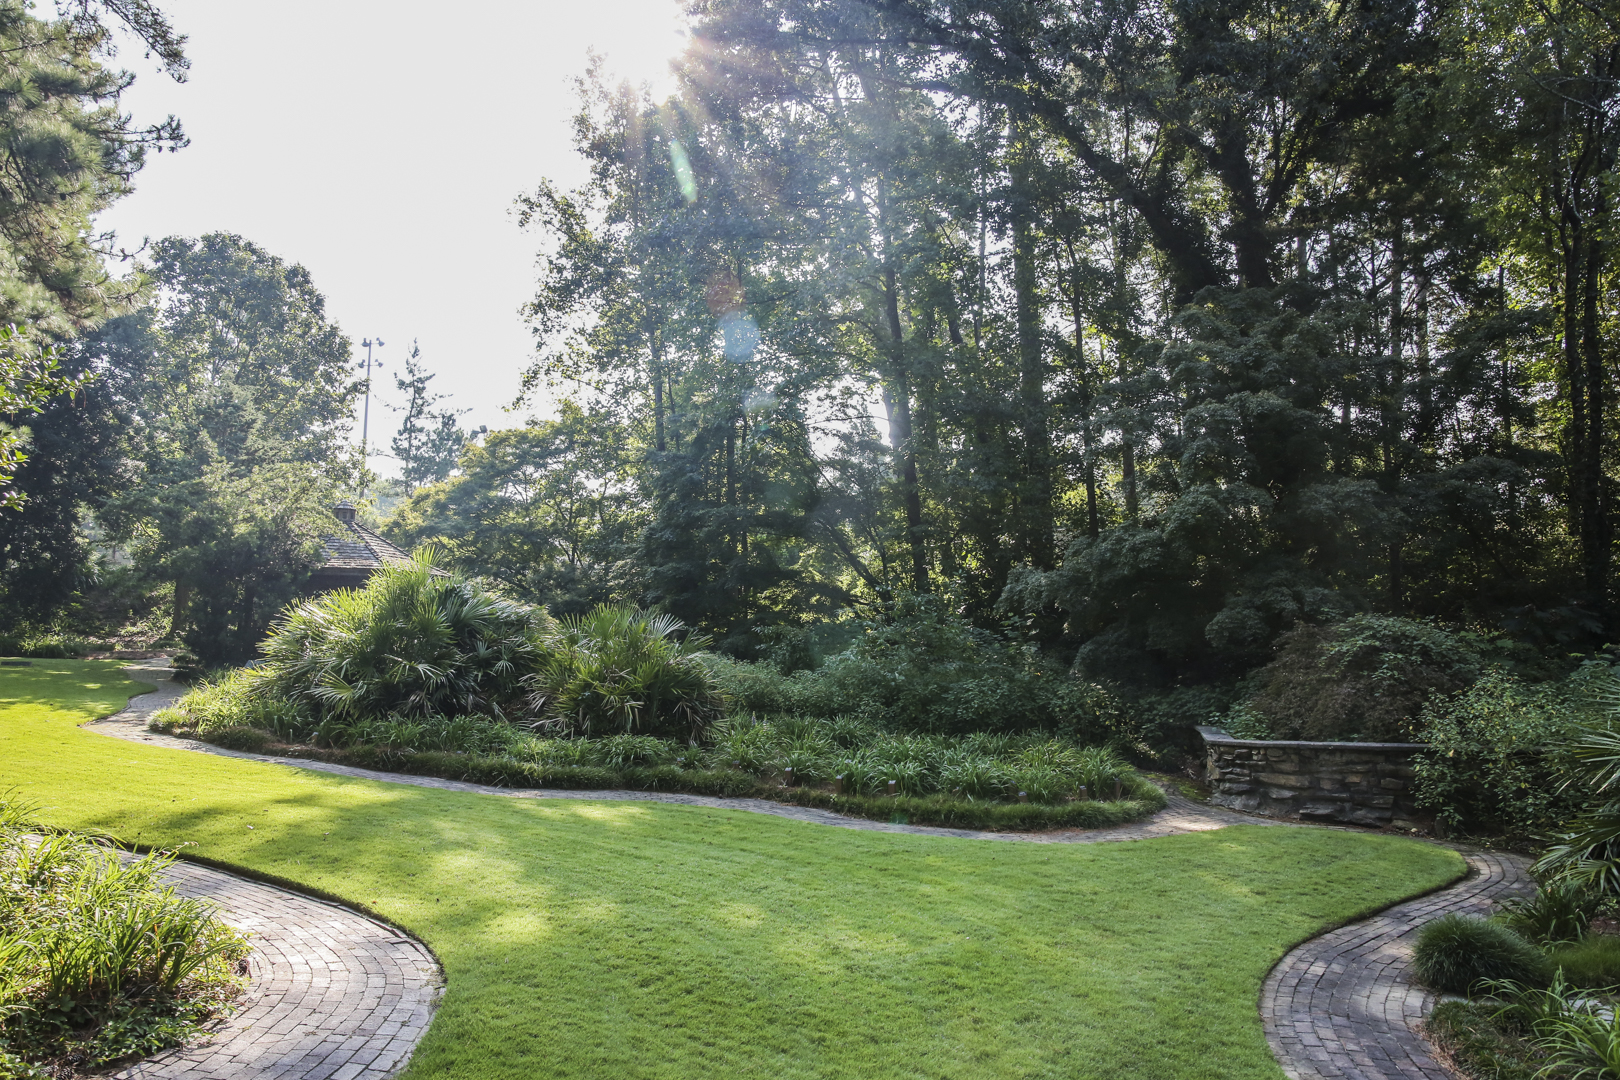 A wide shot of the daylily garden with shrubs, trees, flowers and a gazebo